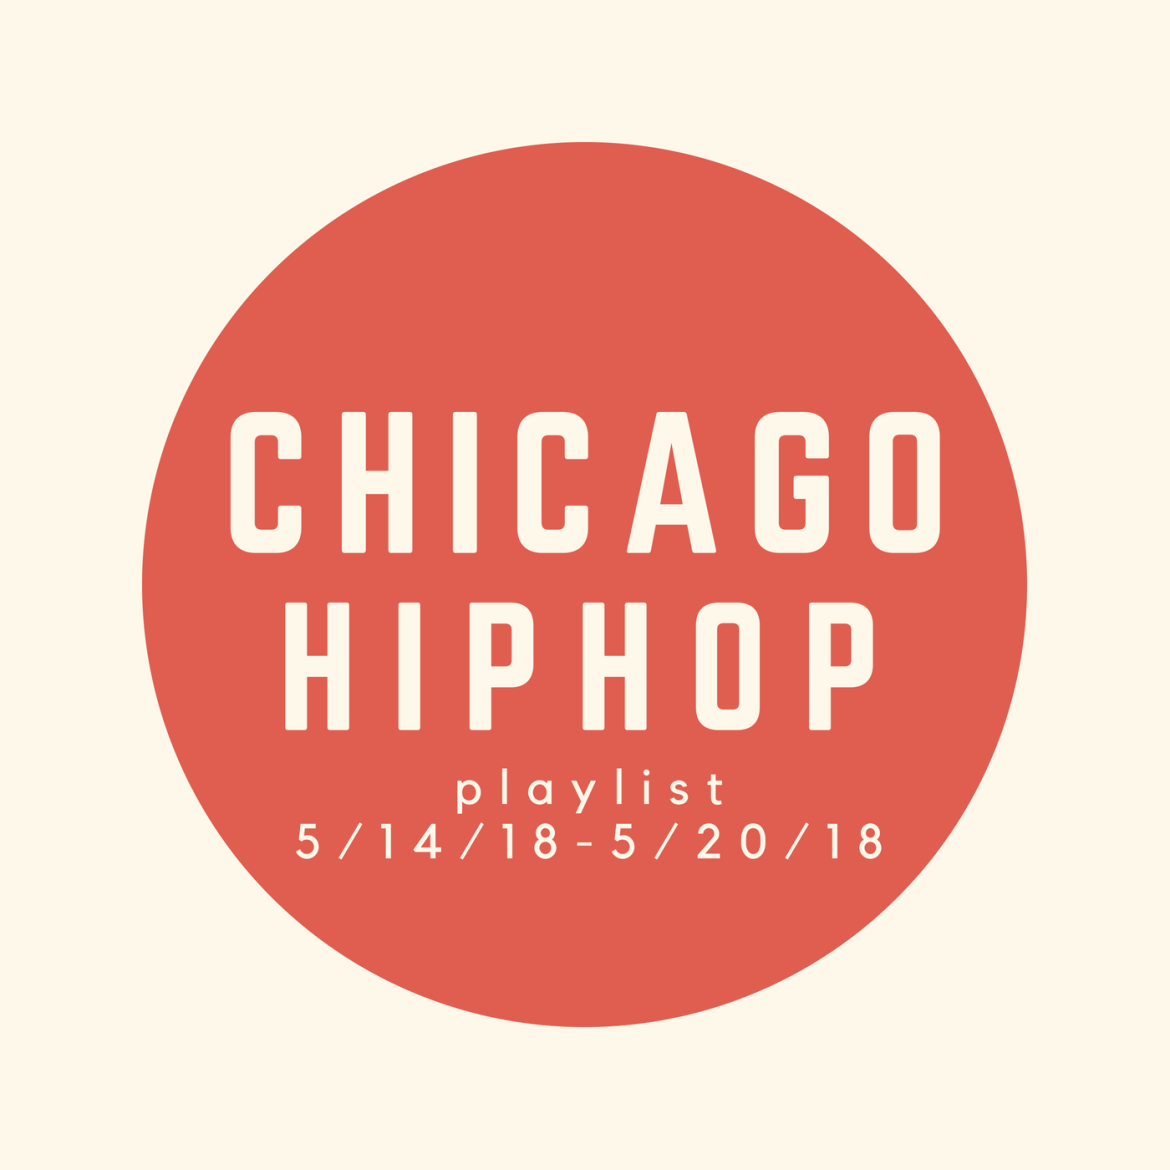 New Chicago Hip Hop Playlist: 5/14/18-5/20/18